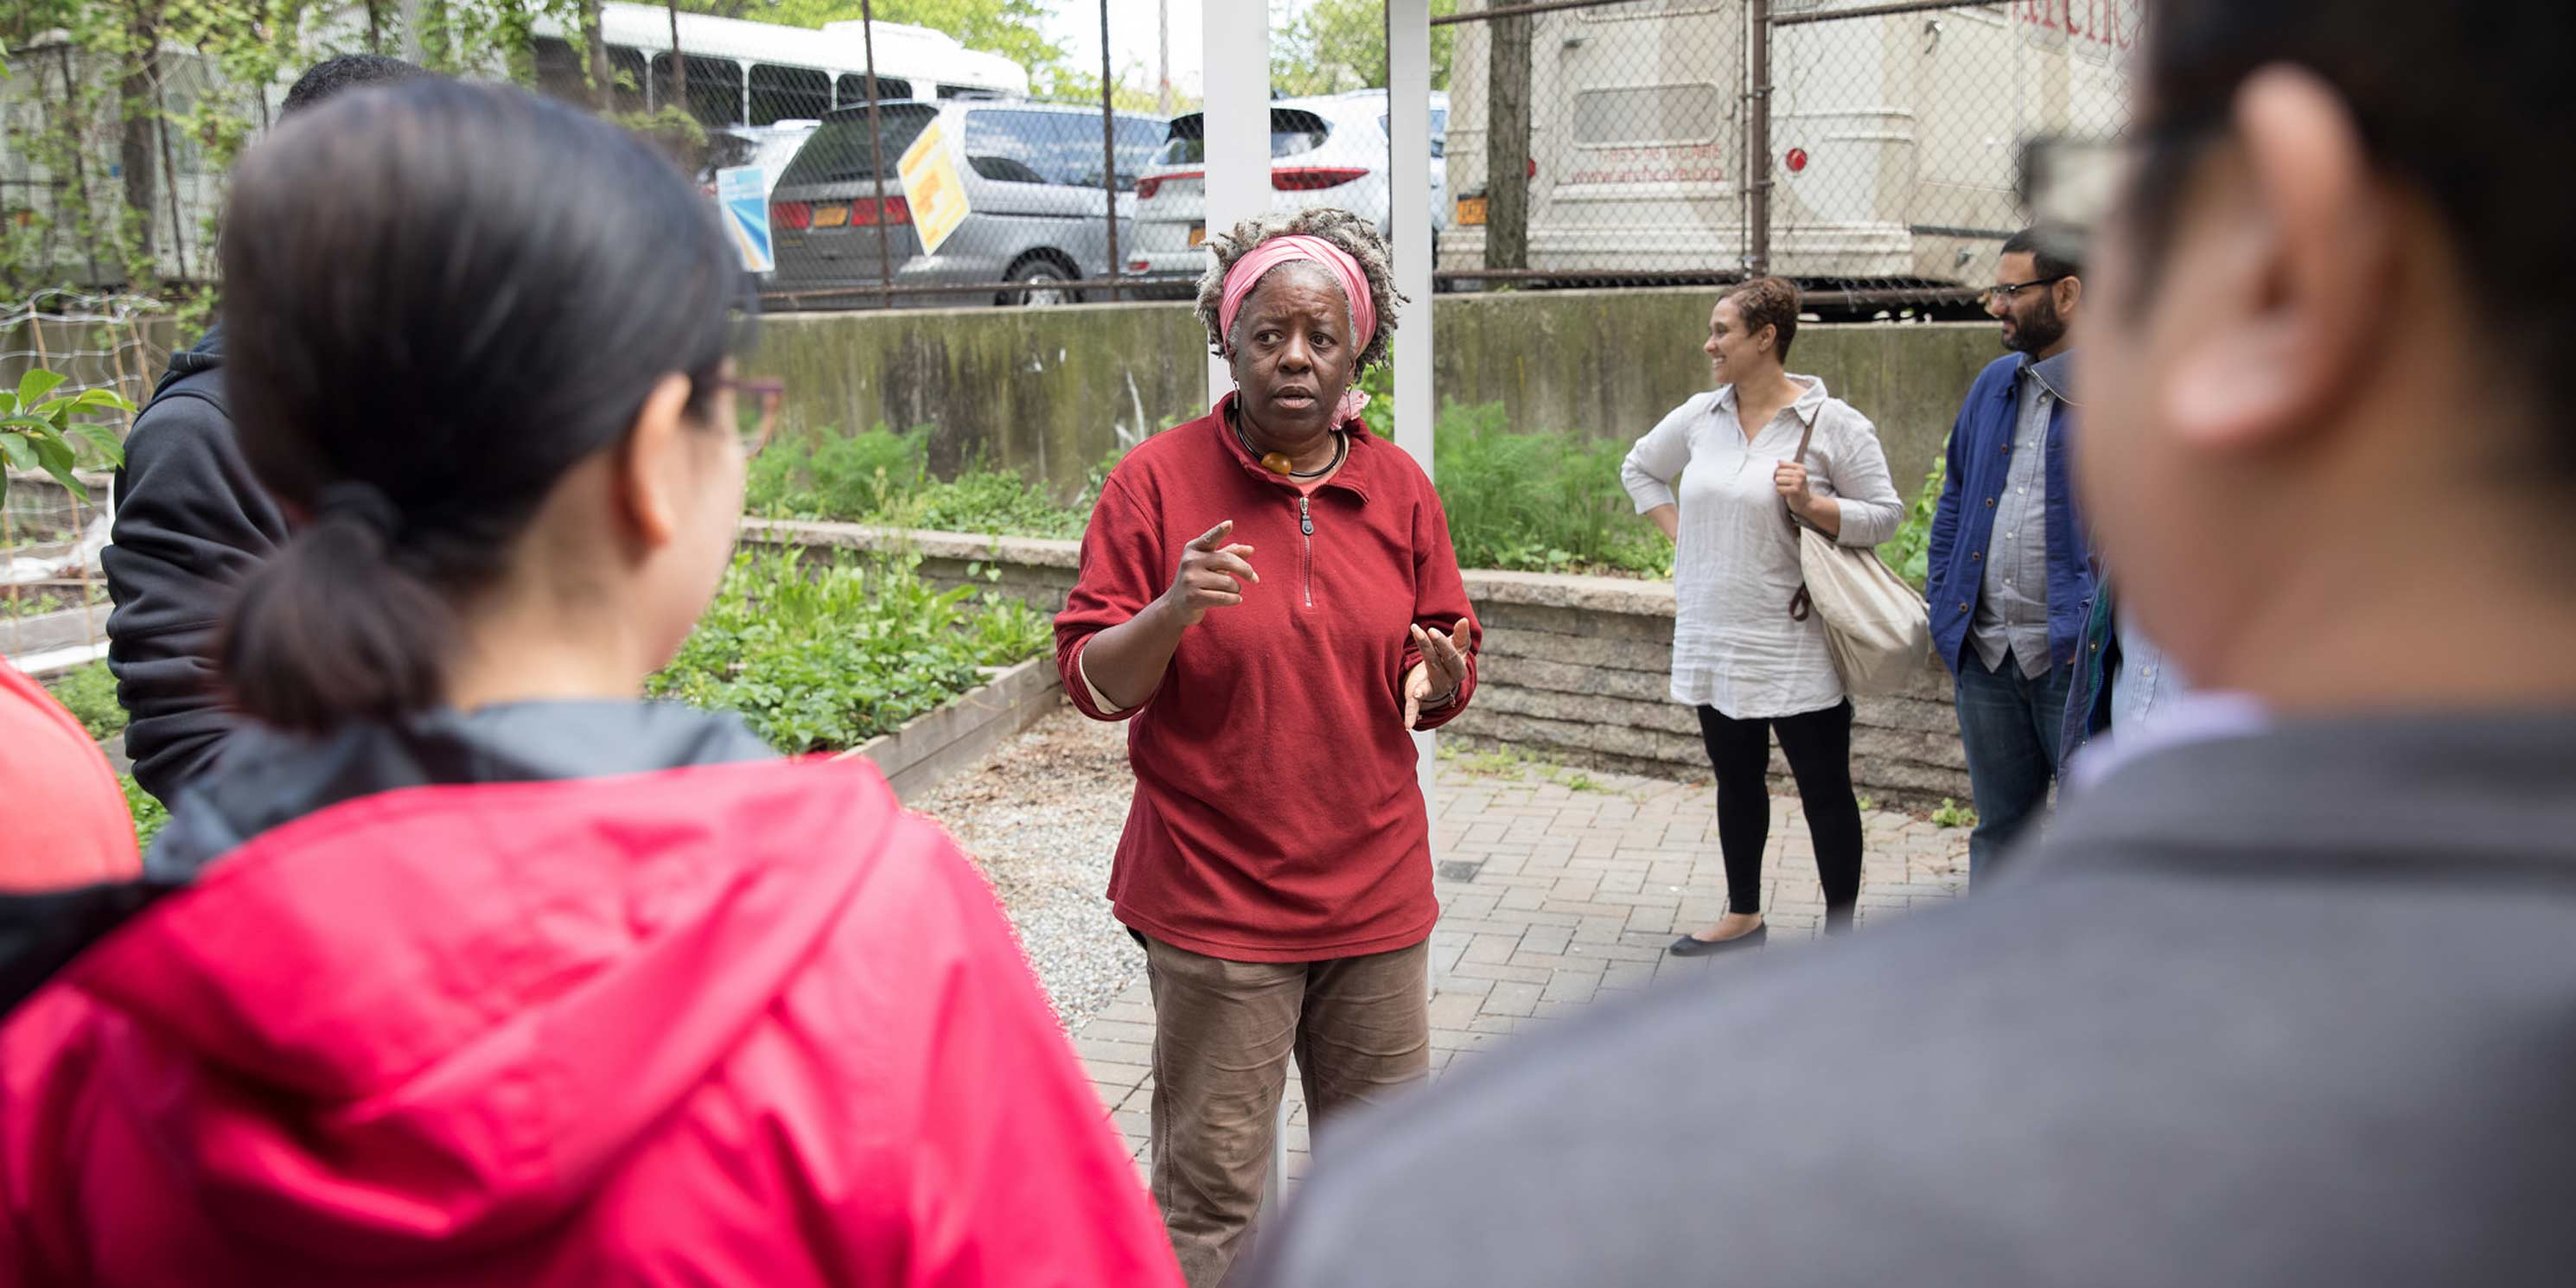 leader speaks during a Jane's Walk at a community garden